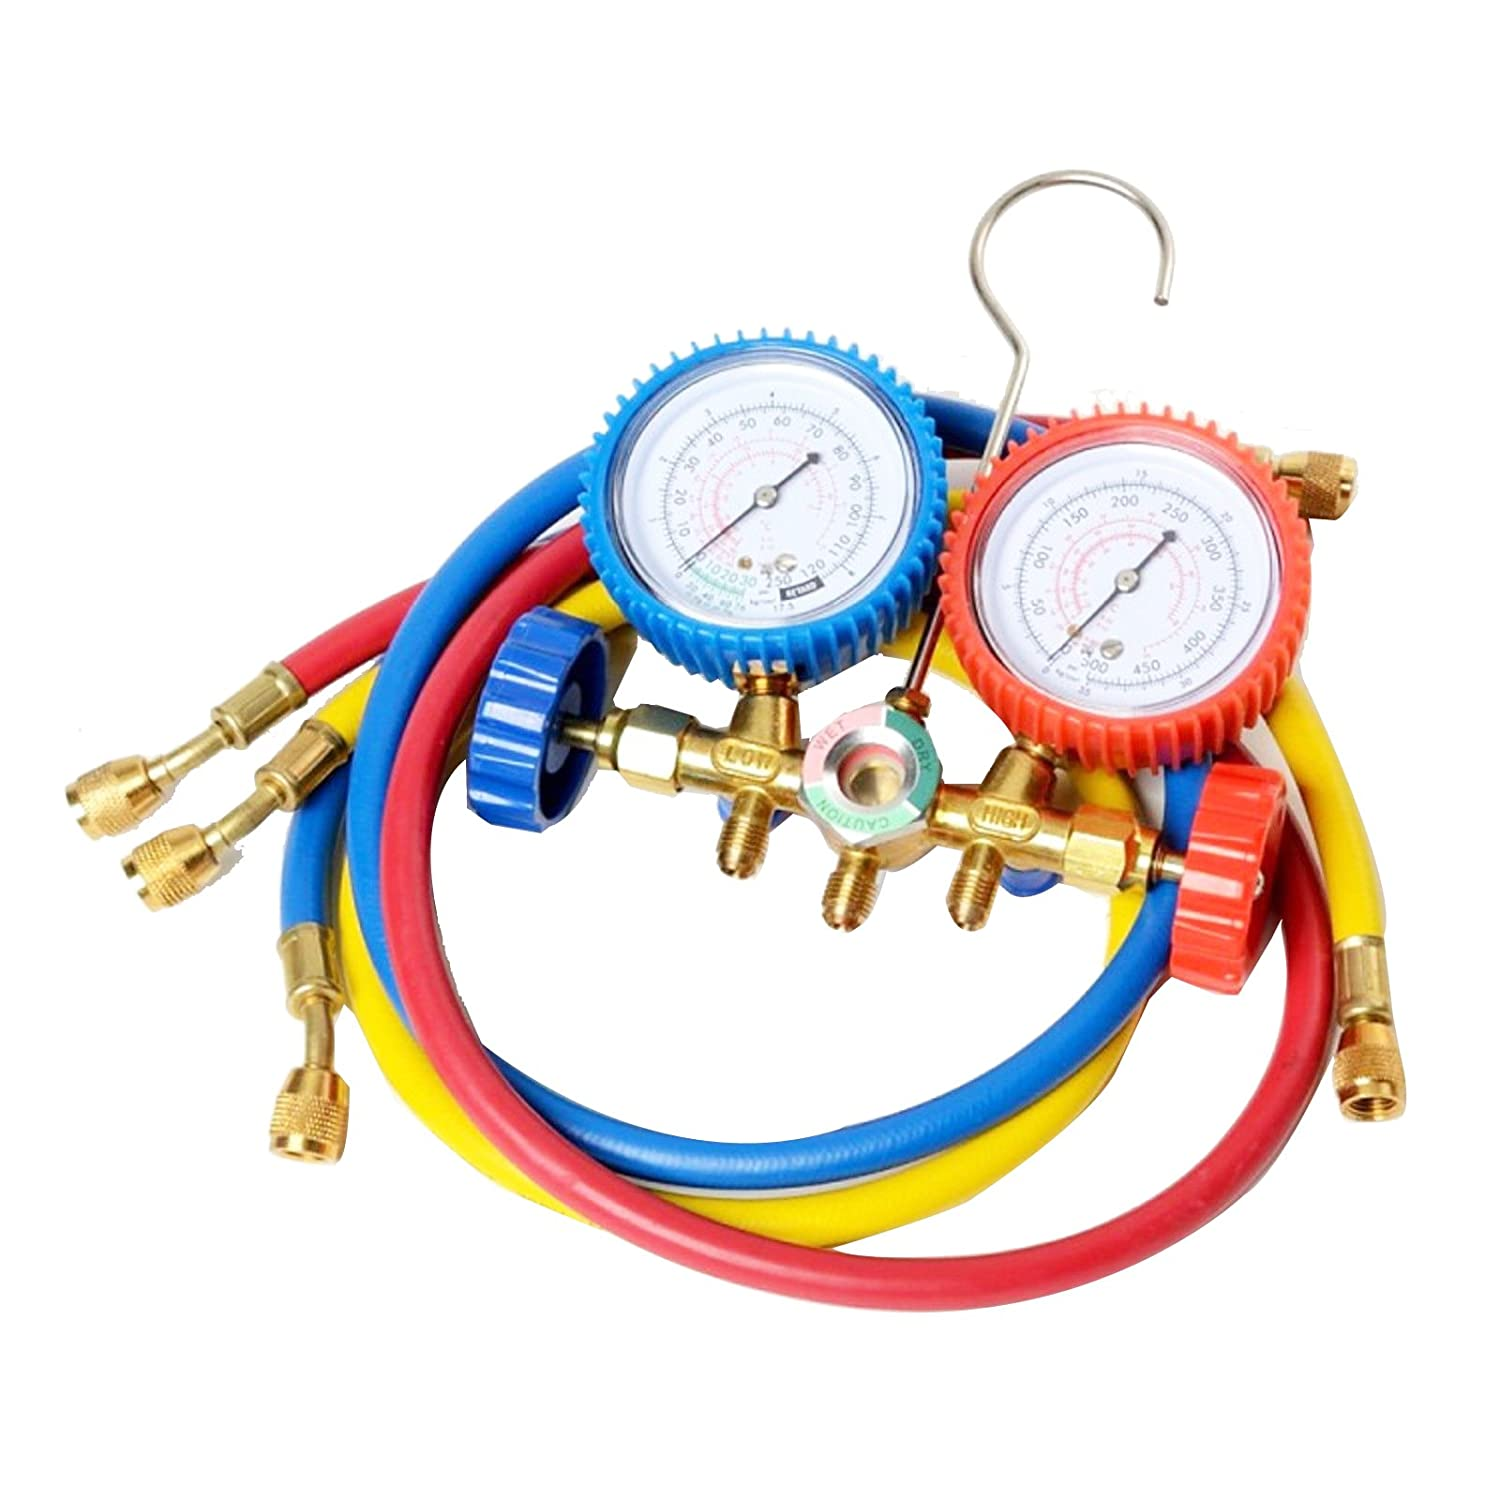 Aozzy Refrigeration Air Conditioning AC Diagnostic Manifold Gauge Tool Set for R134A R12 R22 R502 Refrigerants Hoses Coupler Adapters